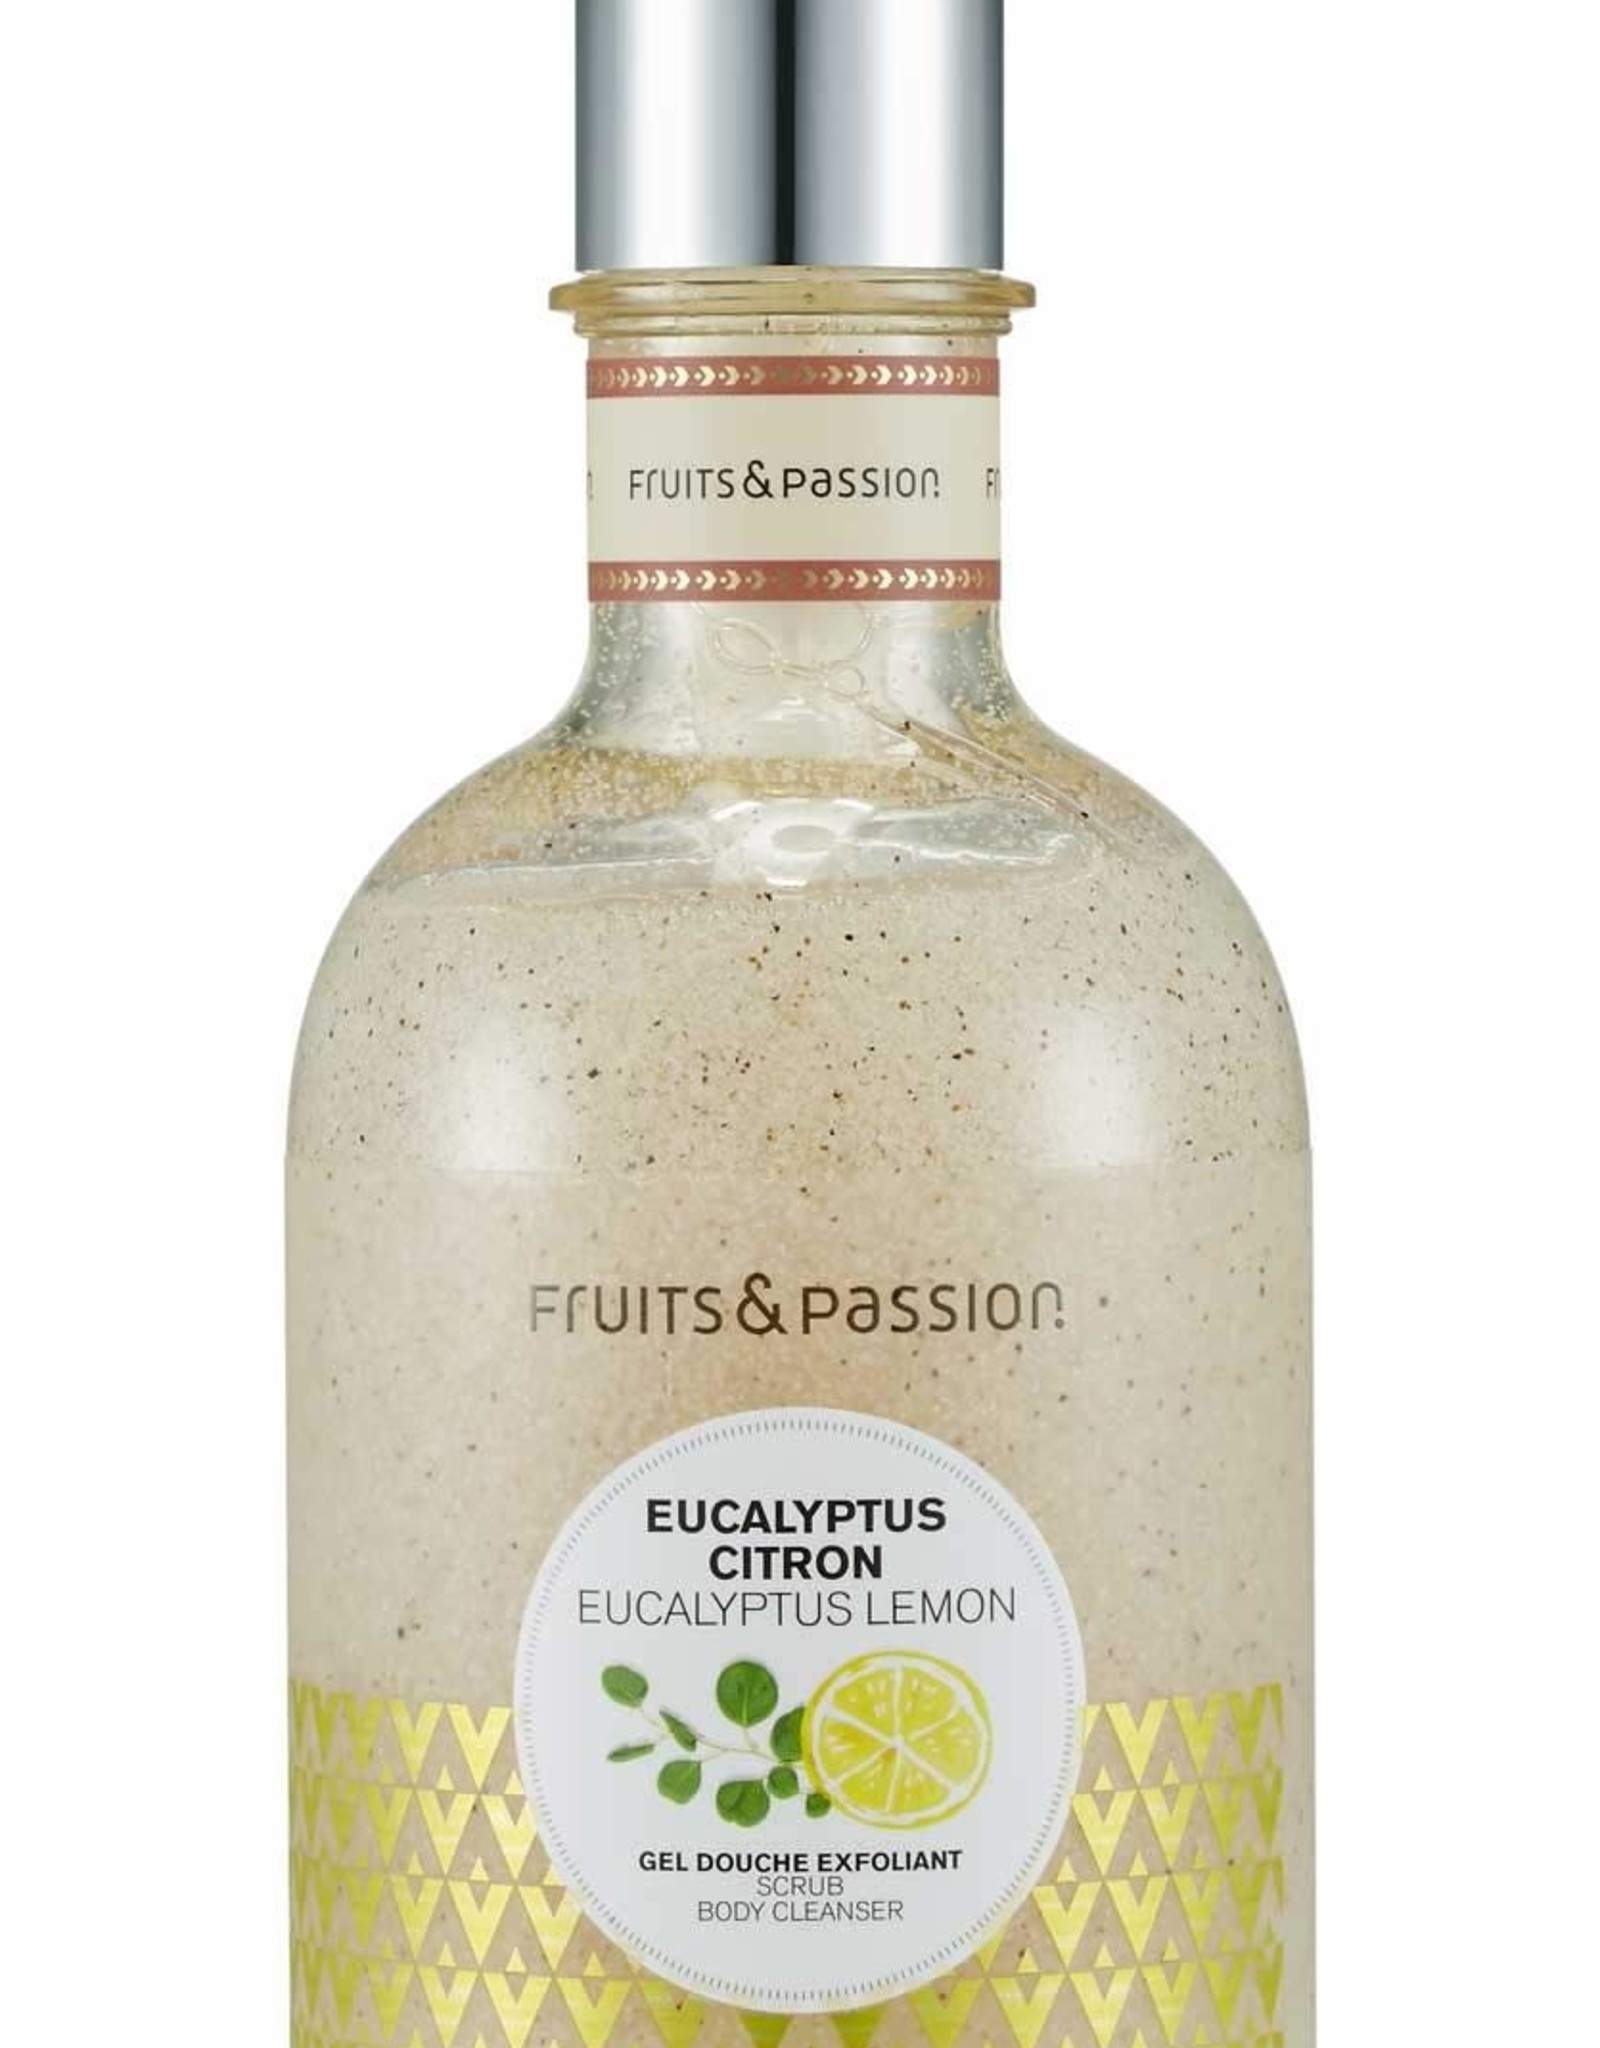 Fruits et Passion Gel Douche Exfoliant Eucalyptus Citron 400ml